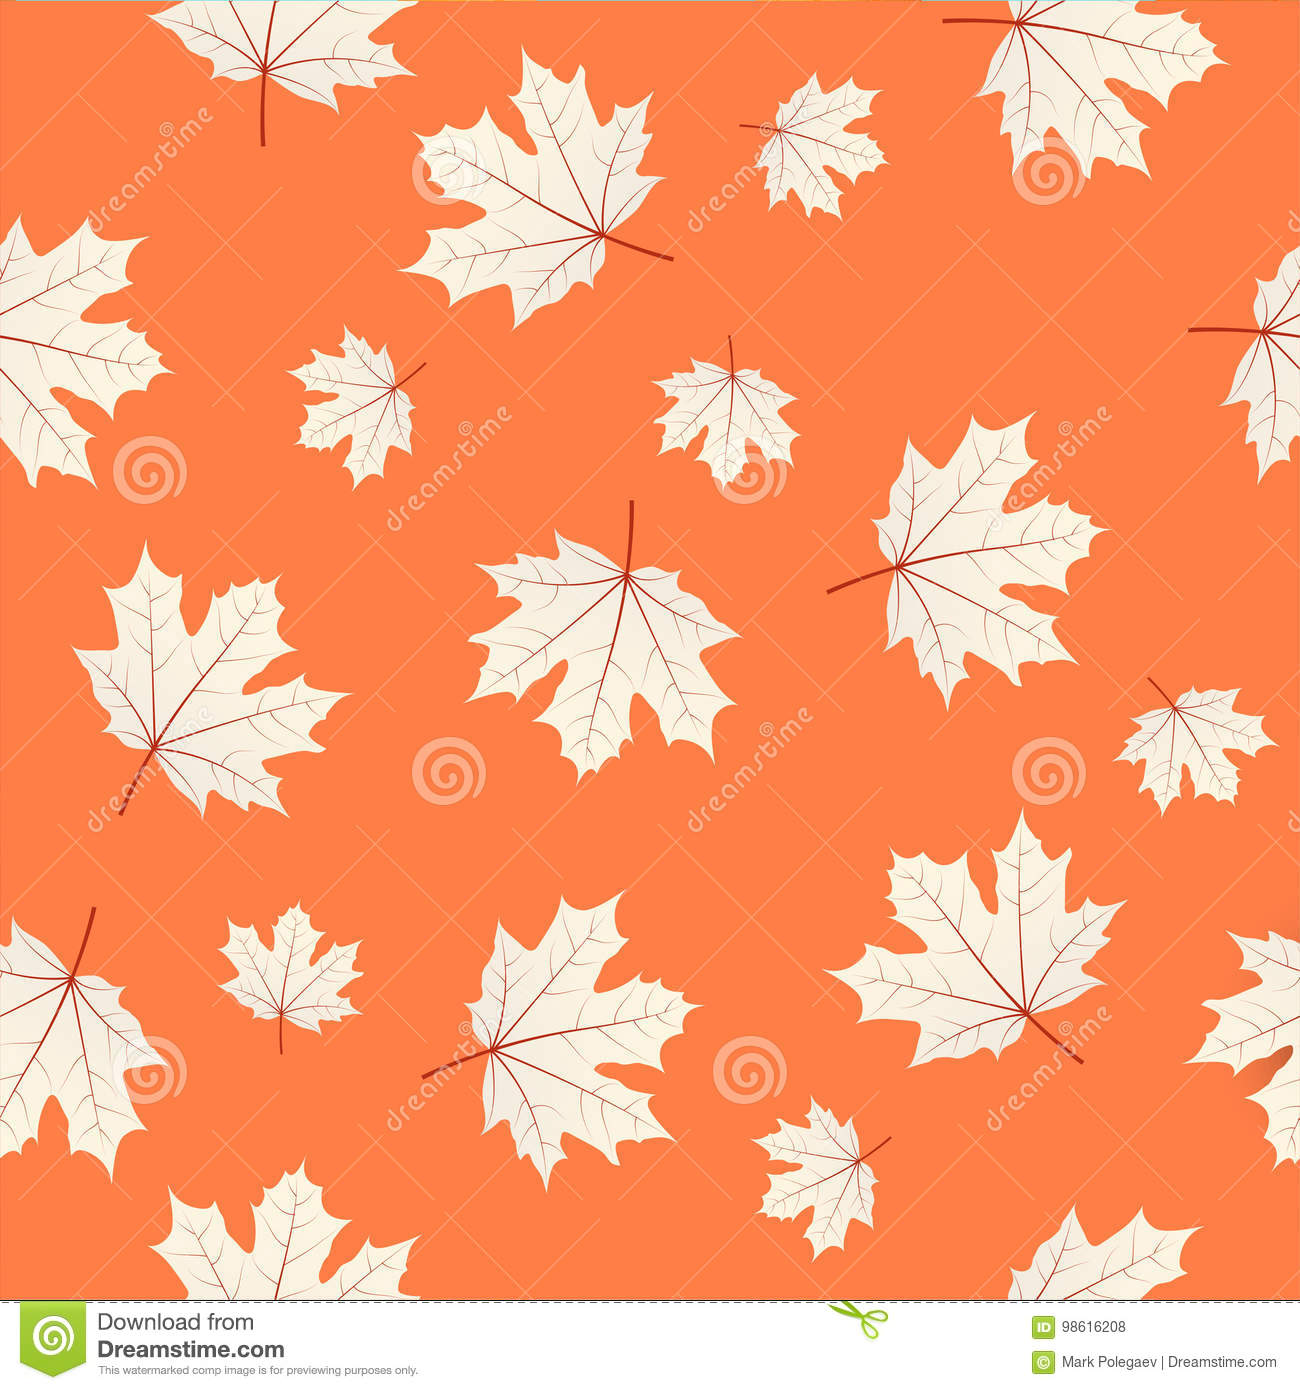 Seamless Pattern With Maple Leaves On Orange Background. Autumn ...